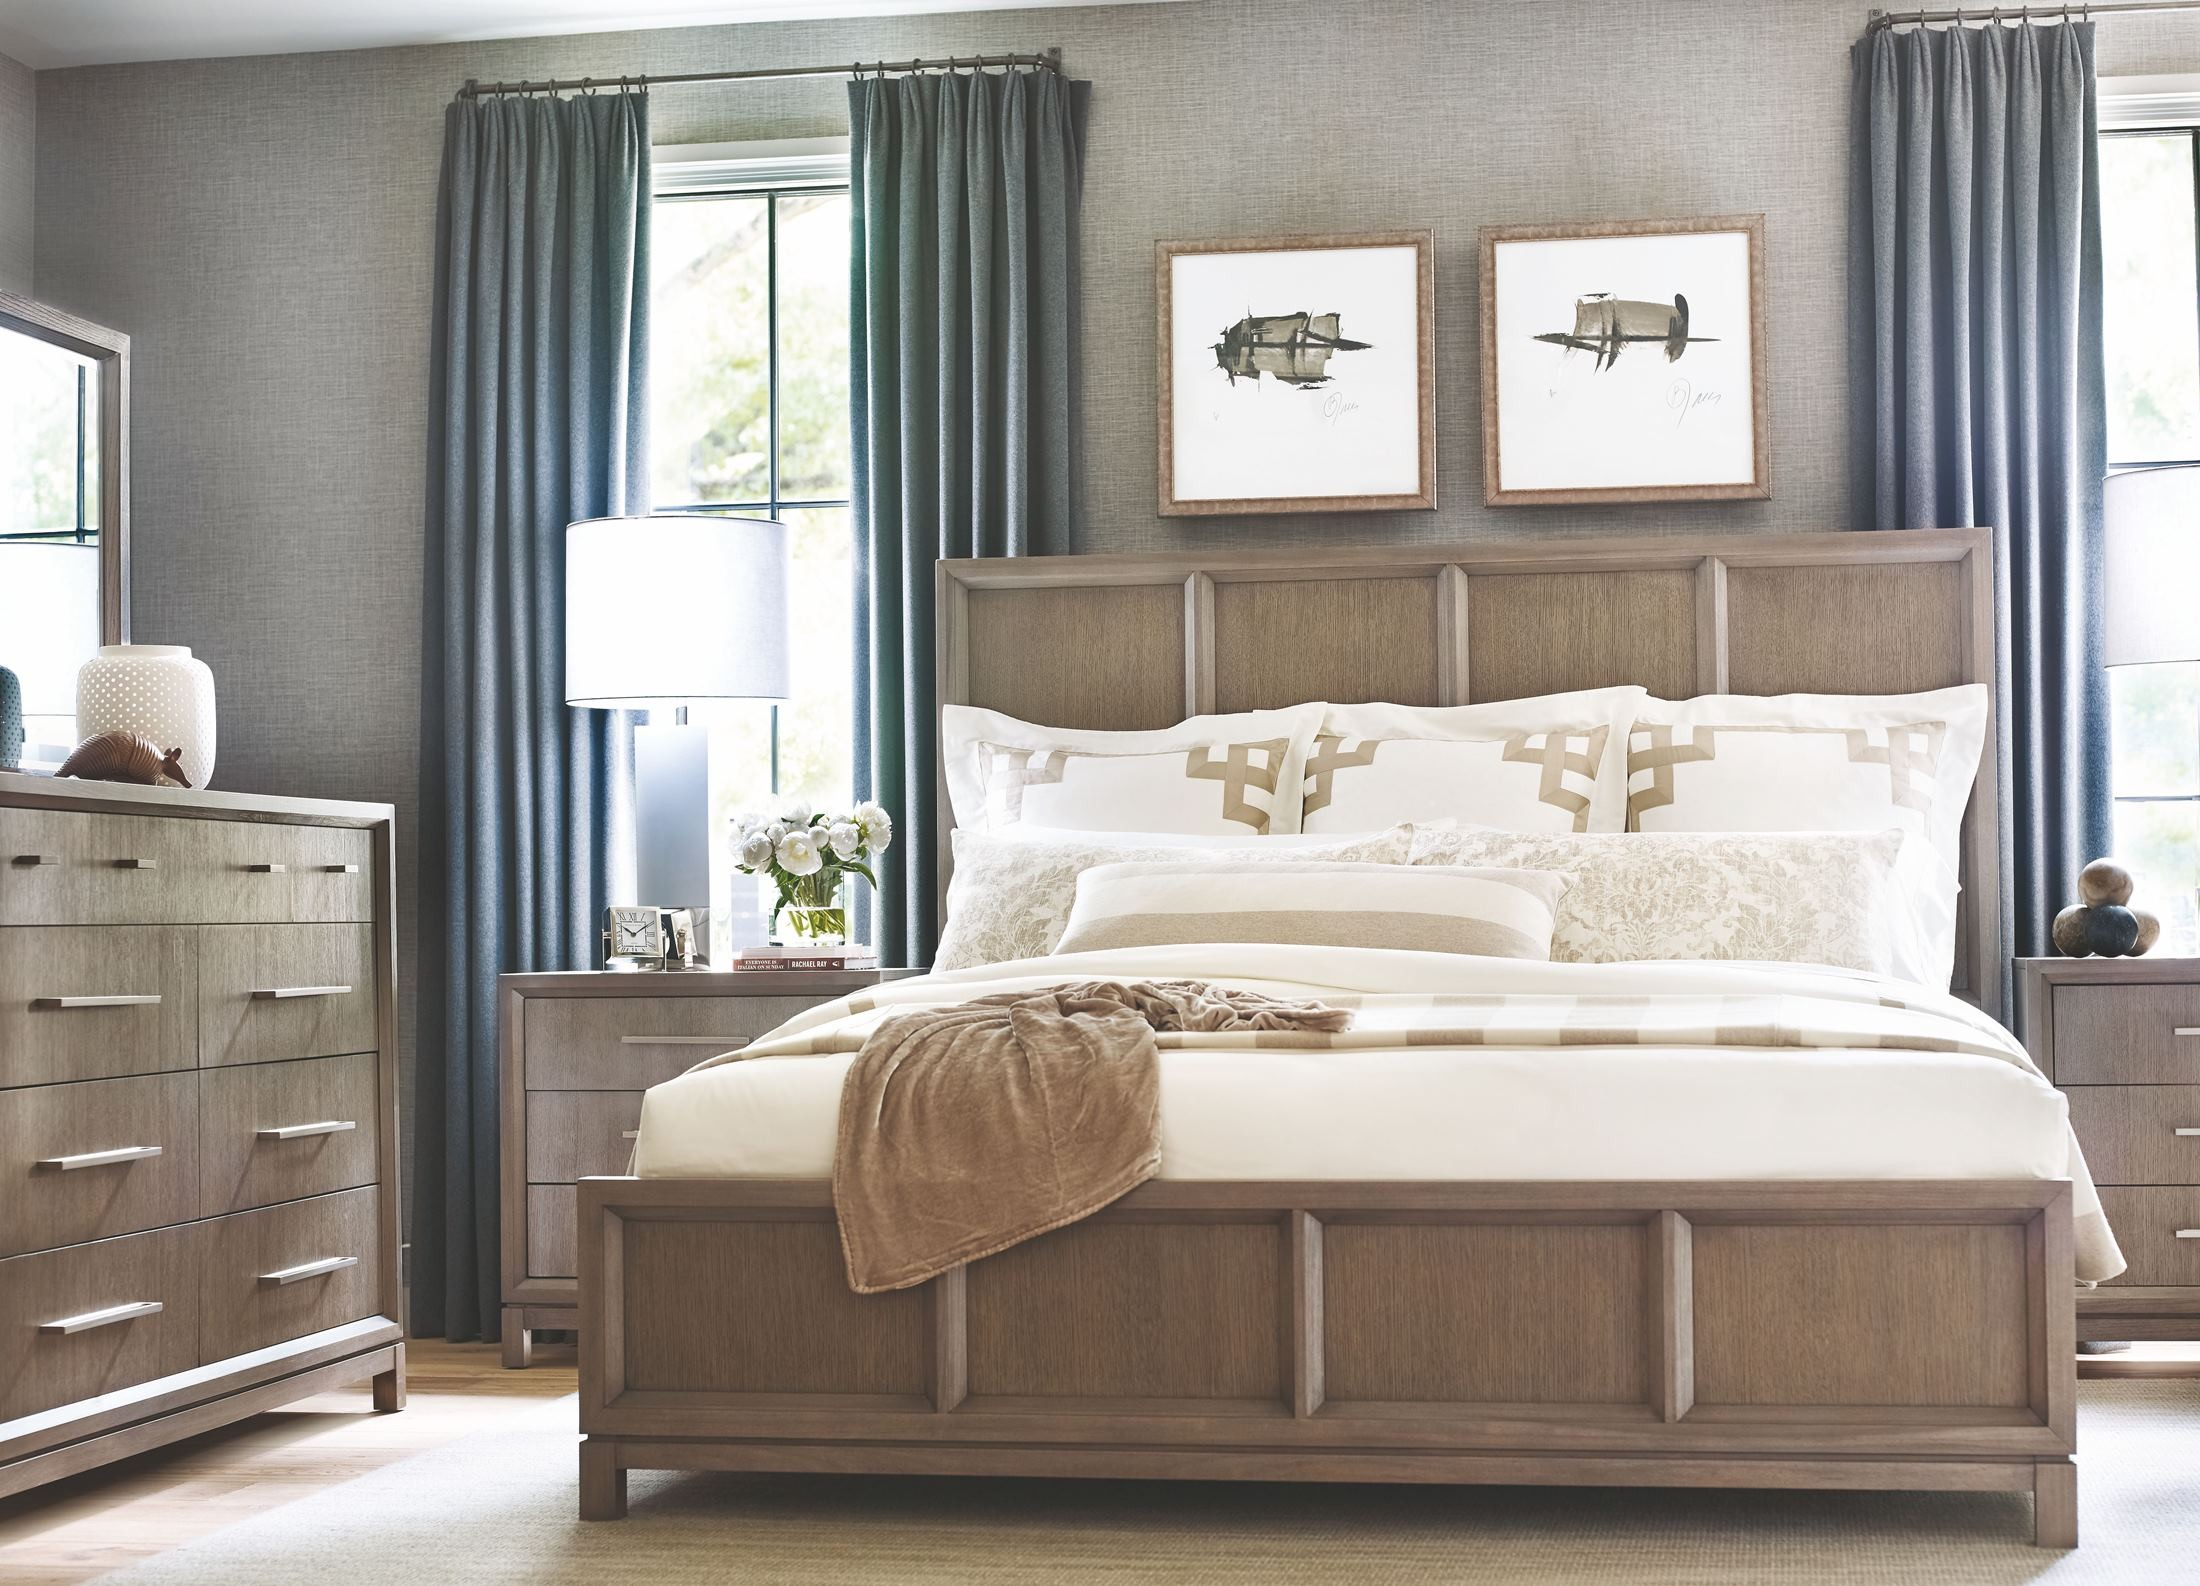 high line greige panel bedroom set from rachael ray home 12075 | 6000 4106k 3100 0200 1200